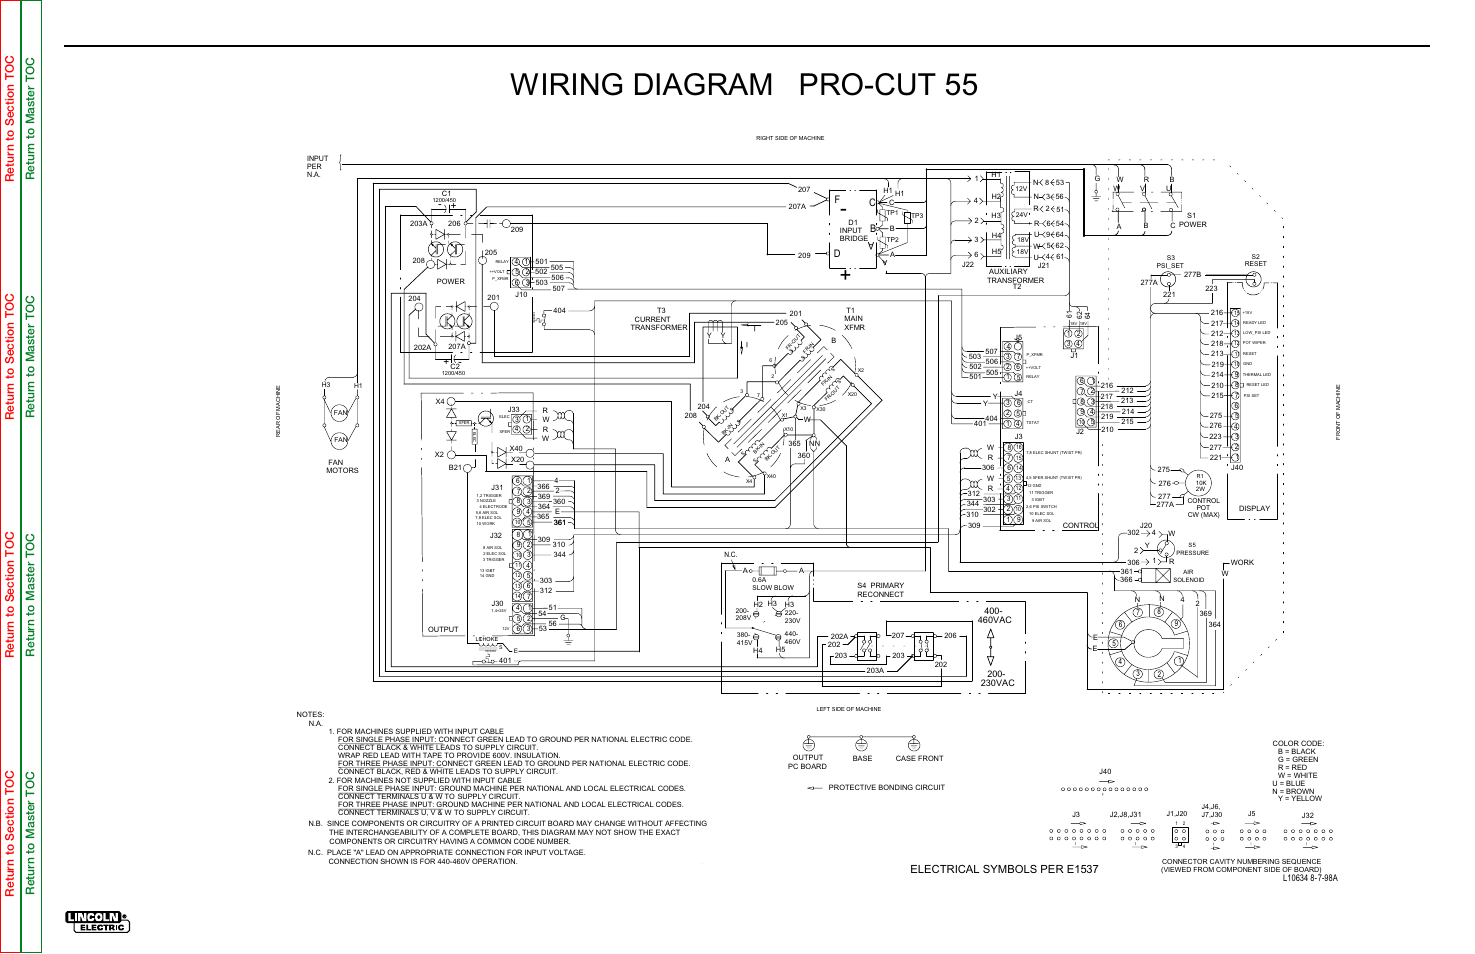 Molao Cut 50 Wiring Diagram